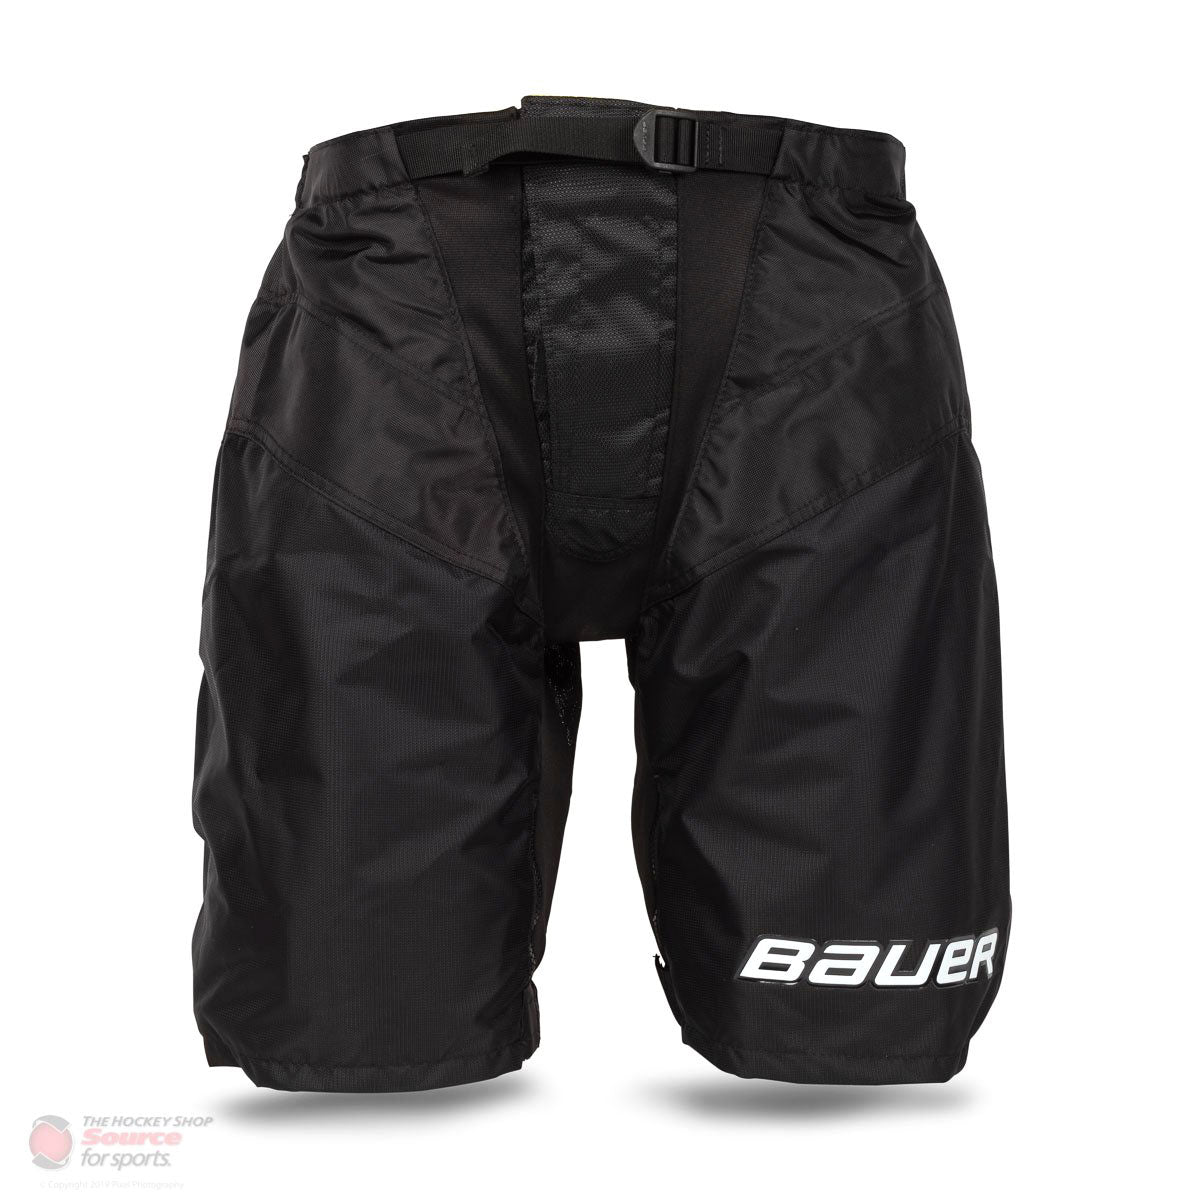 Bauer Supreme Senior Hockey Pant Shells